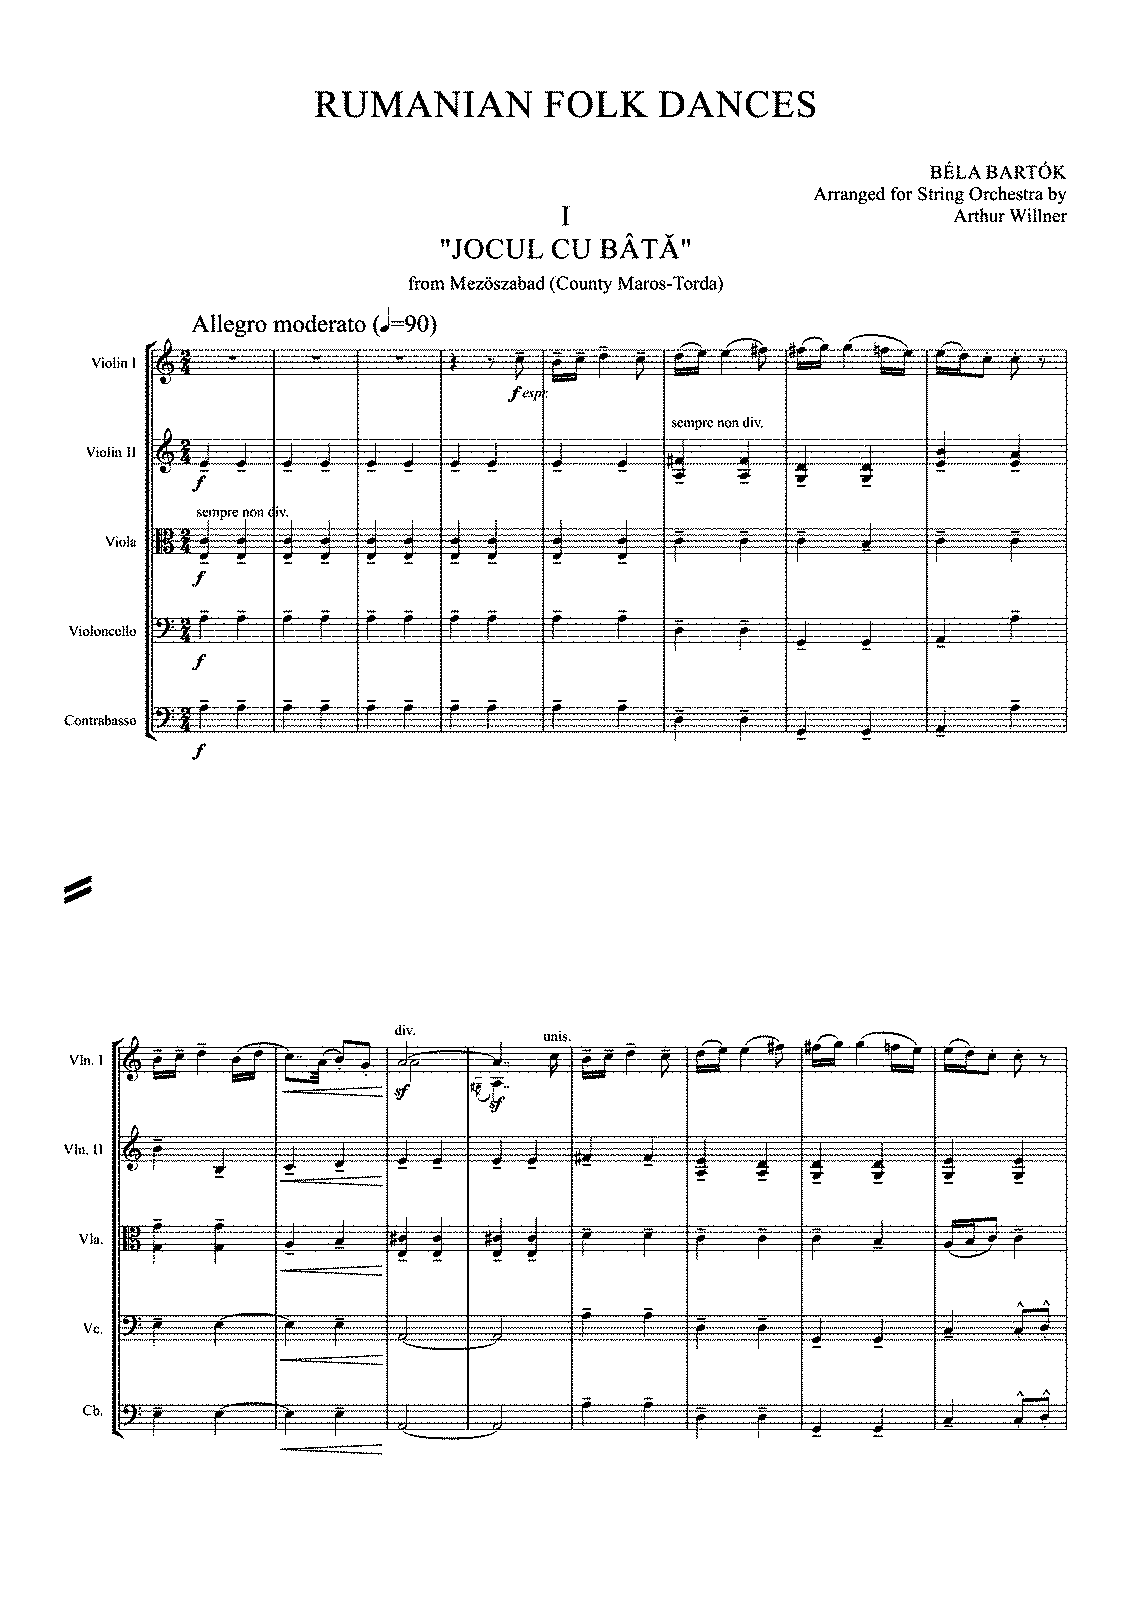 PMLP23942-Rumanian Folk Dances (arr. cuerdas) - Partitura.pdf